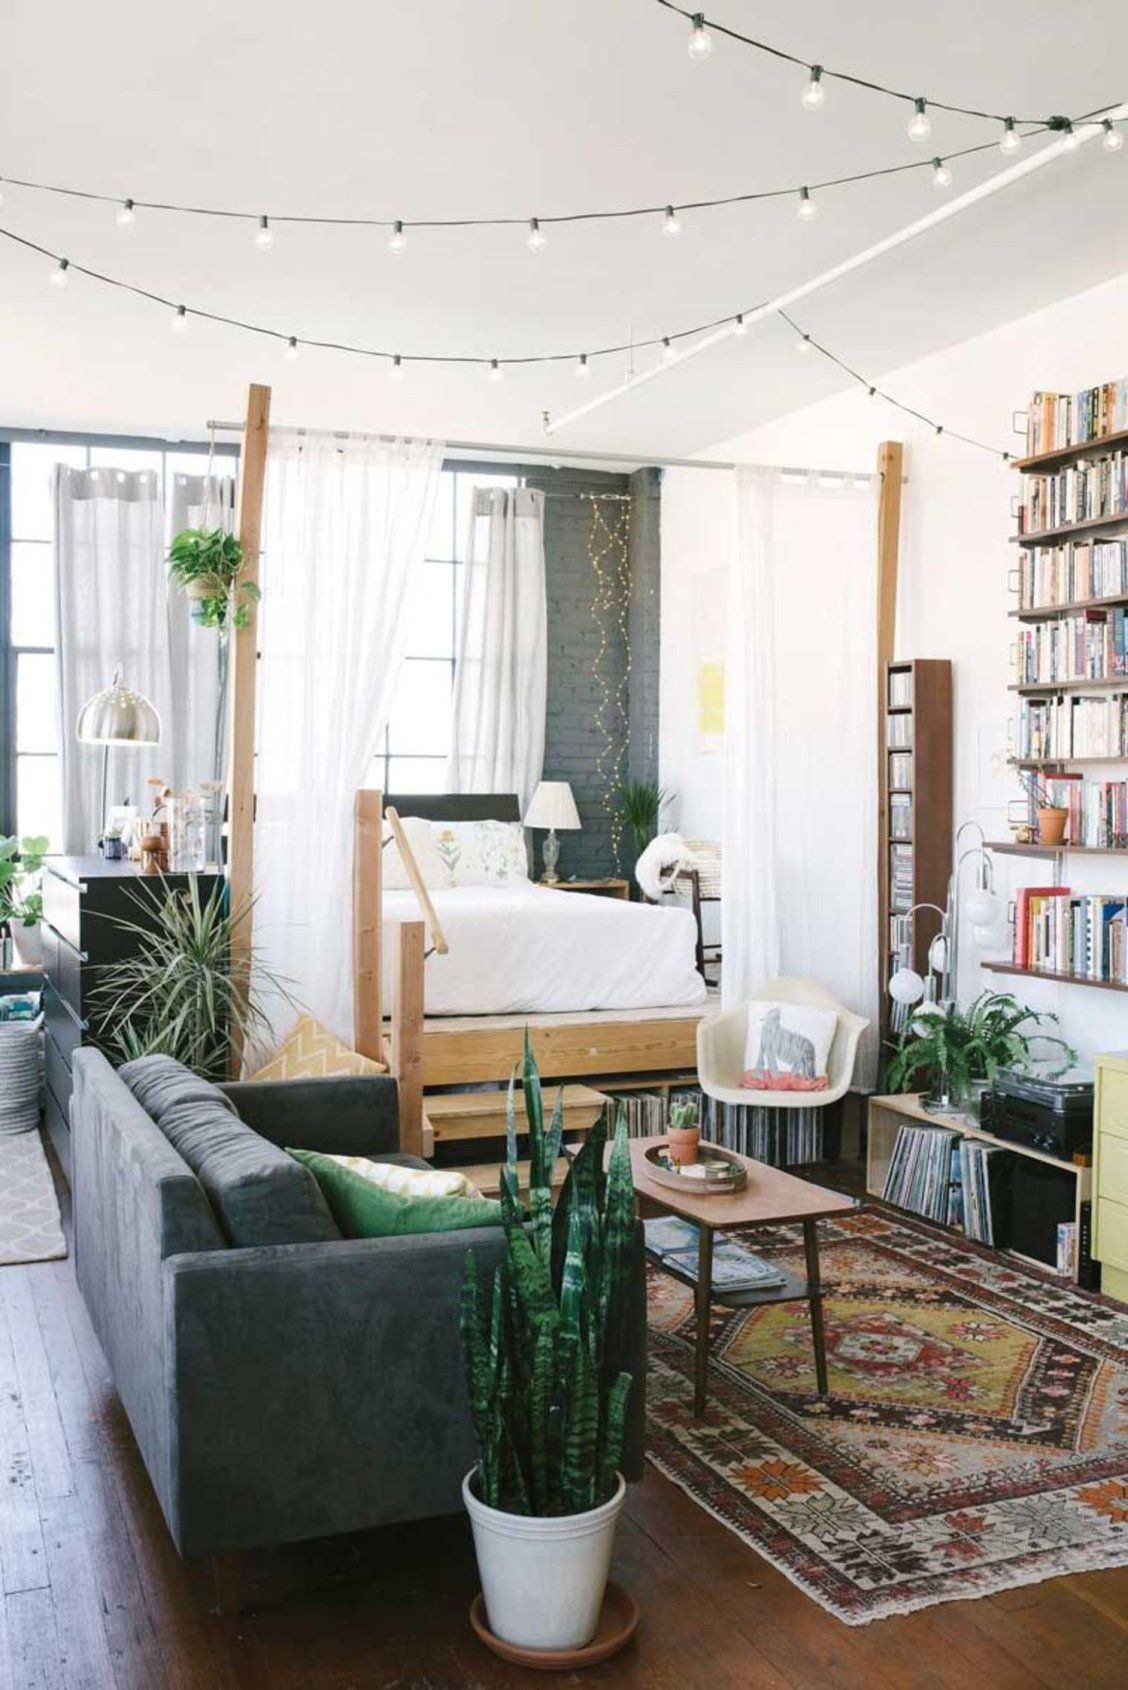 How to Create a Separate Bedroom in a Studio Apartment | Pinterest ...